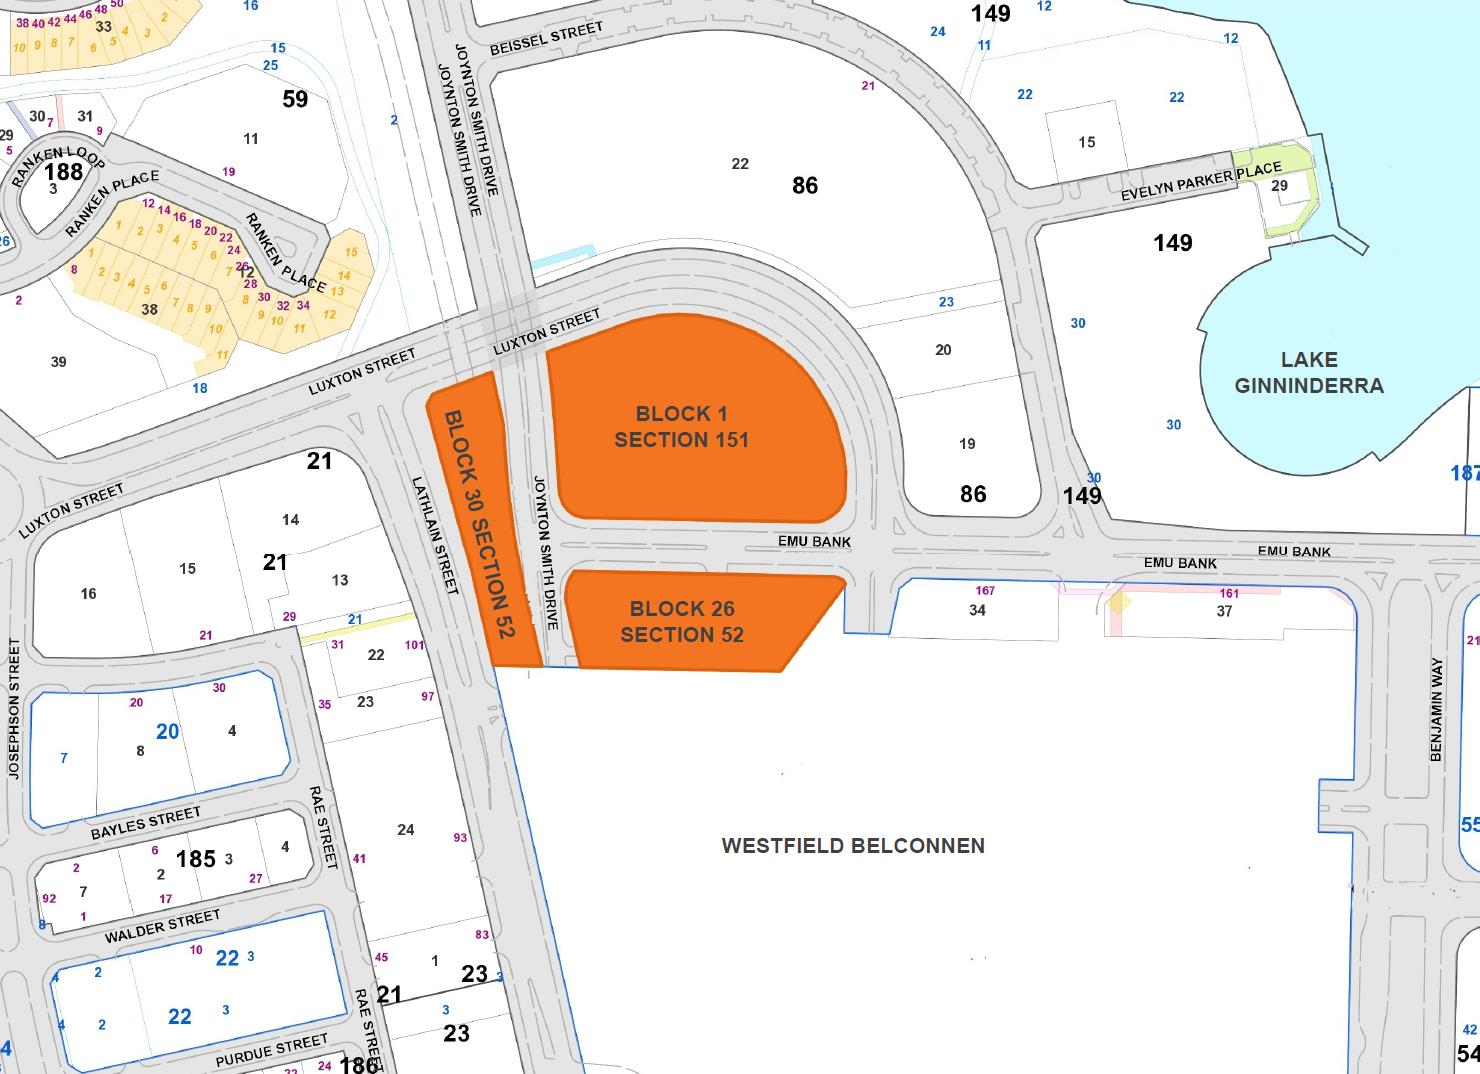 Map 1: Sites for future sale and urban renewal